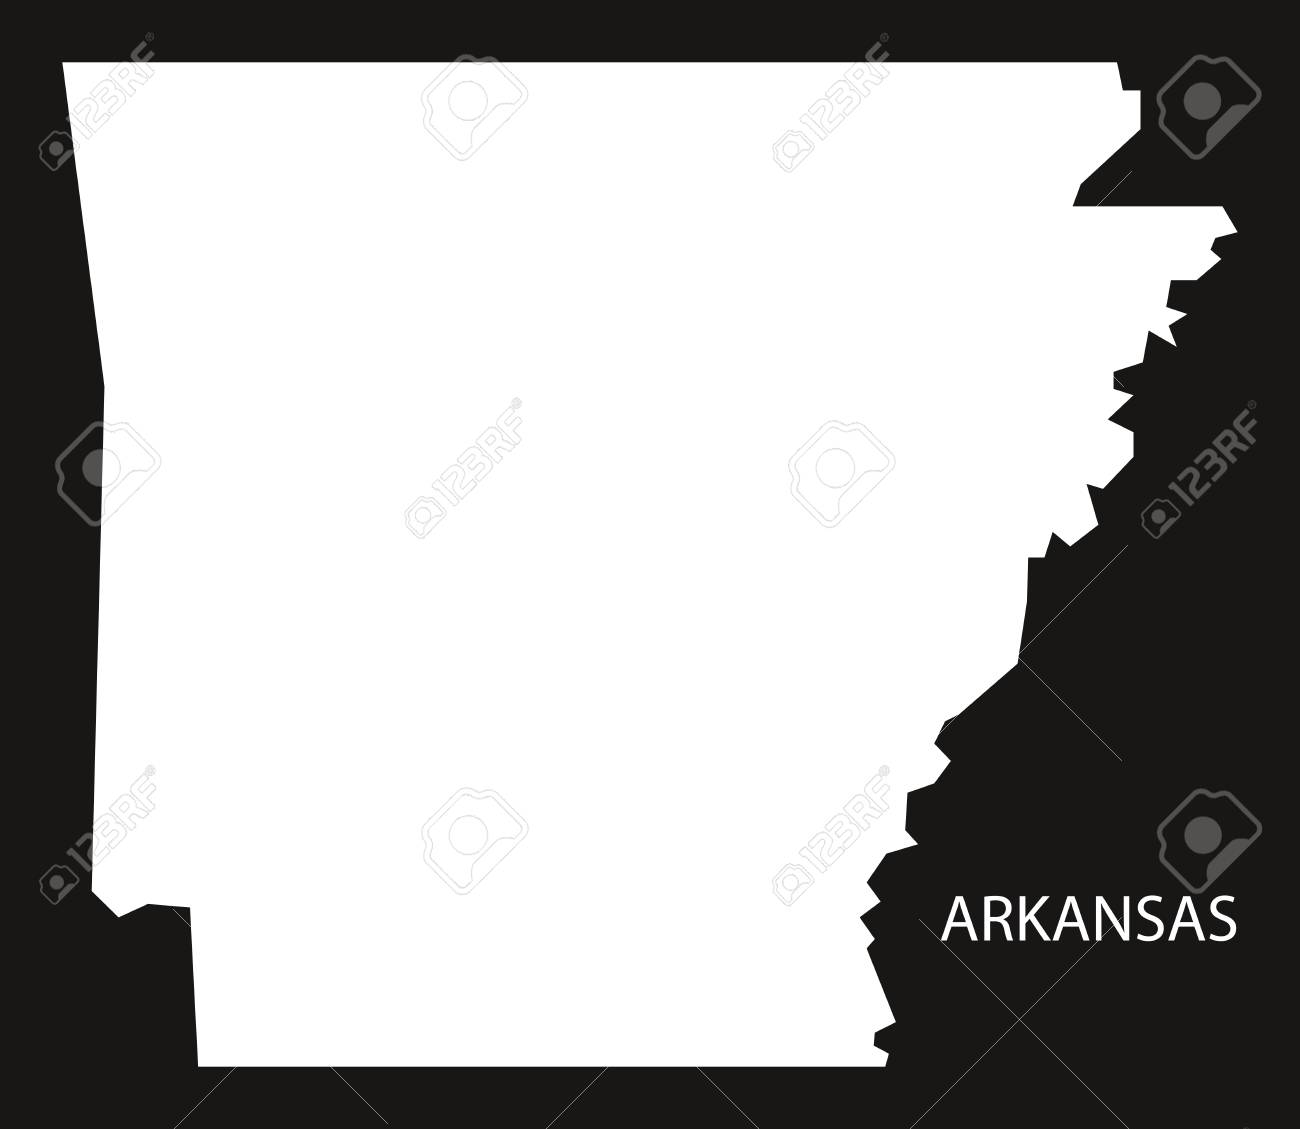 Arkansas On Usa Map.Arkansas Usa Map Black Inverted Silhouette Royalty Free Cliparts